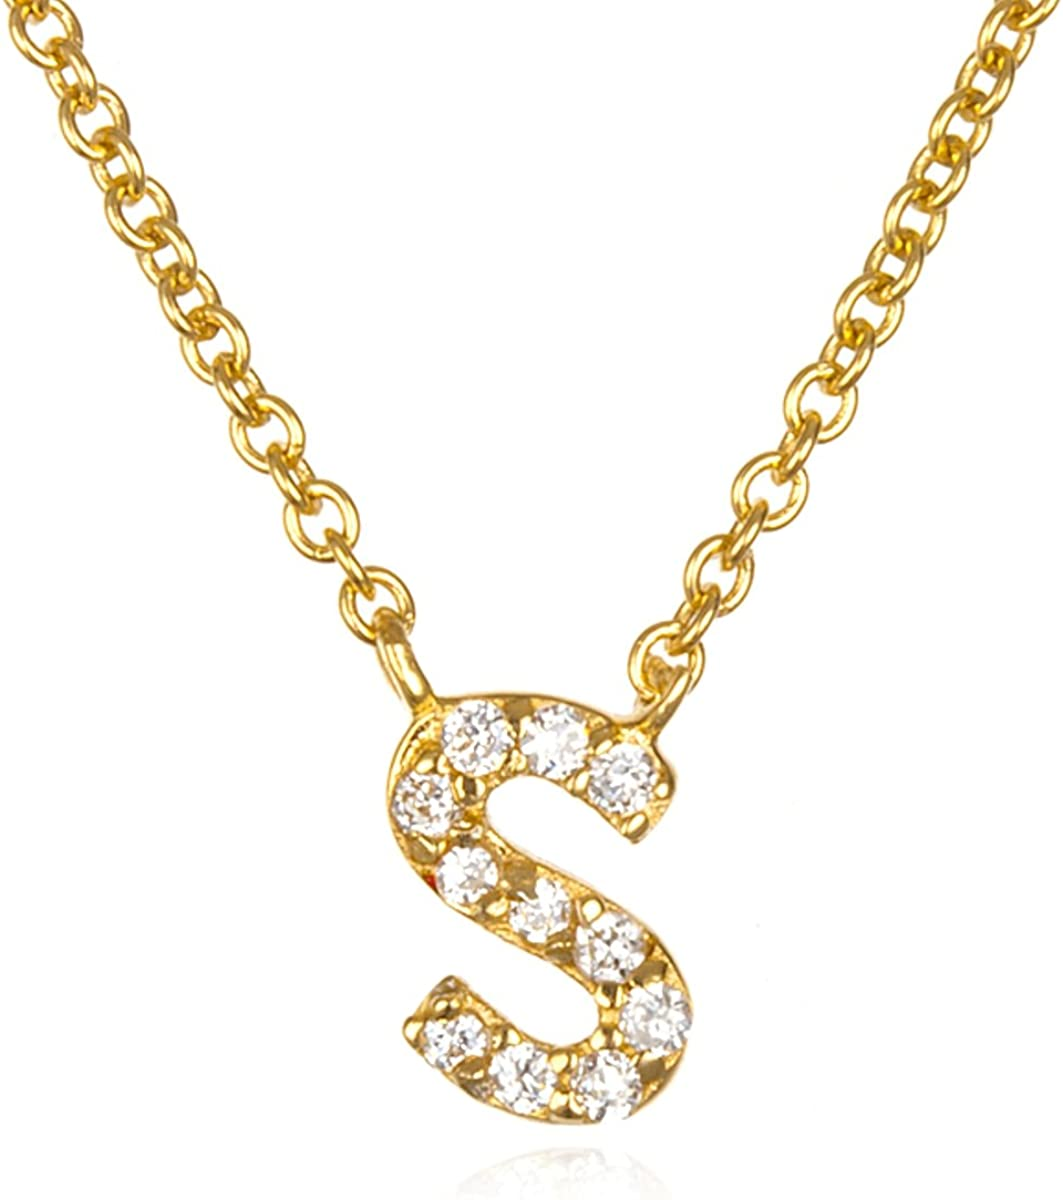 White CZ Initial I Necklace with 18 Inch Chain